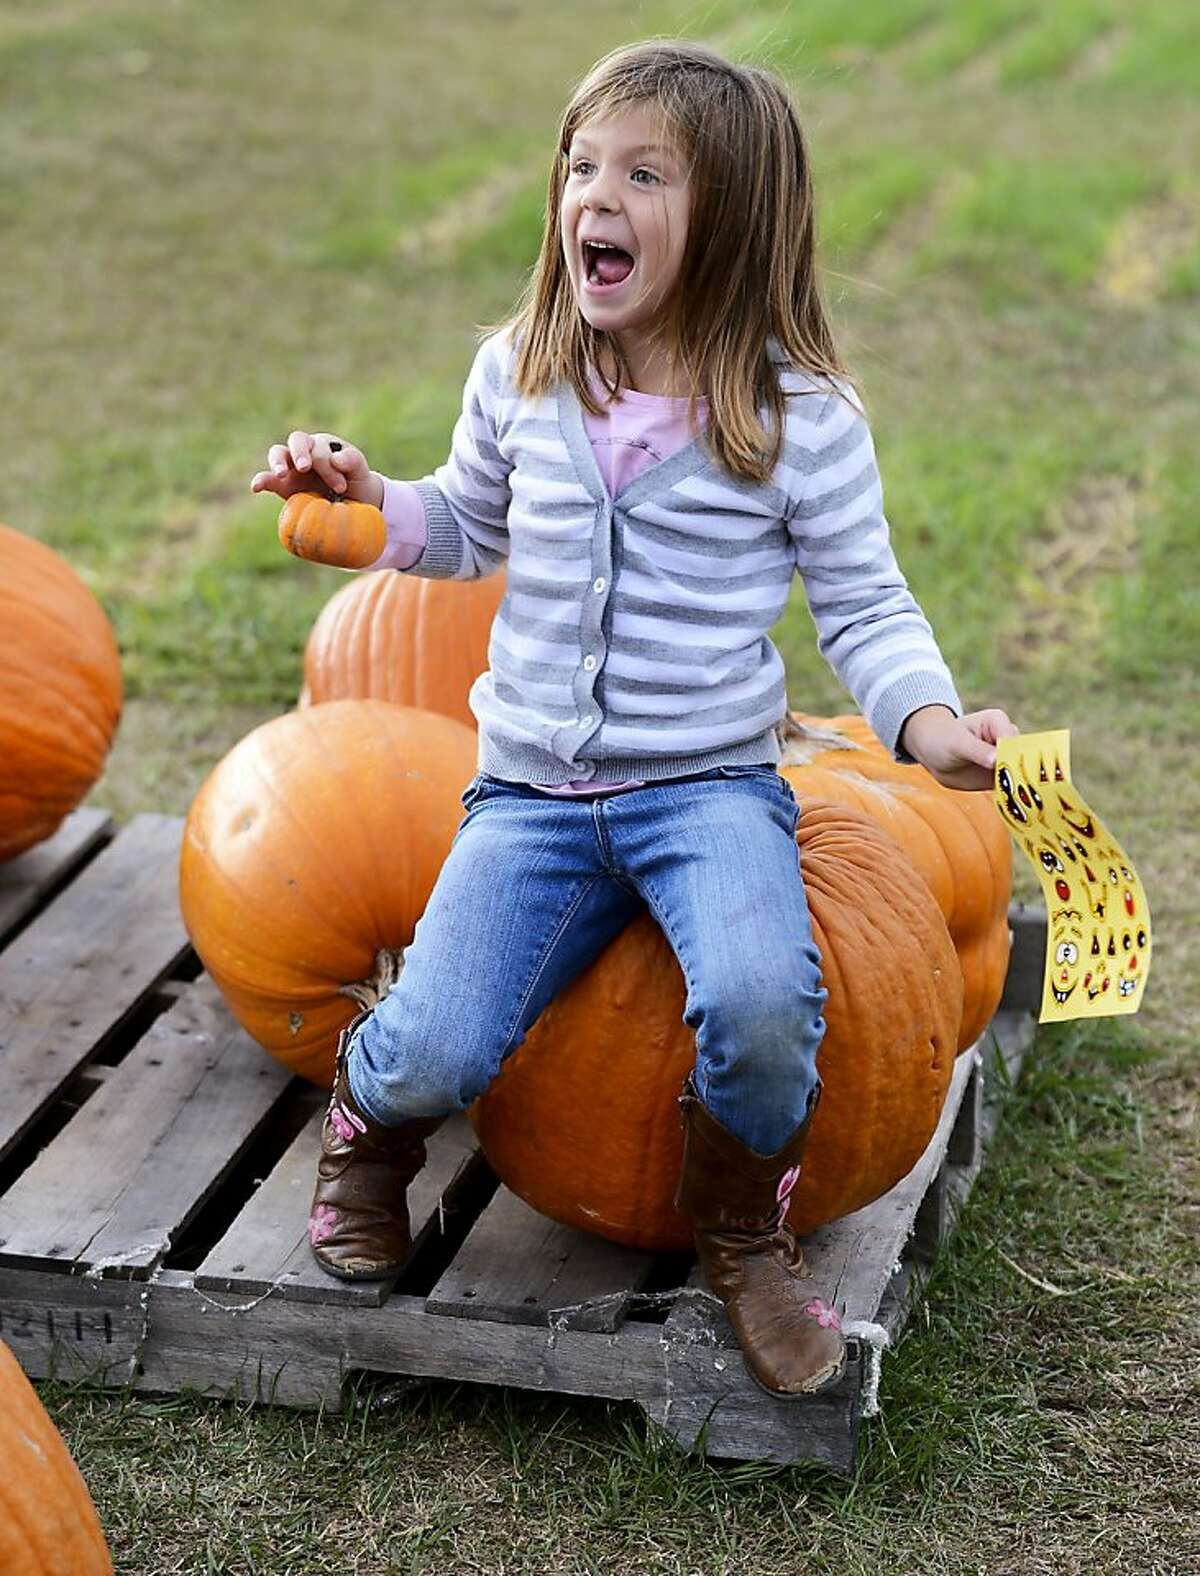 Ye-OW! Addison Whitt was helping her brother and mother pick out a pumpkin for Halloween in Decatur, Ala., when she abruptly sat down on a gourd. Apparently she forgot that pumpkins have stems.